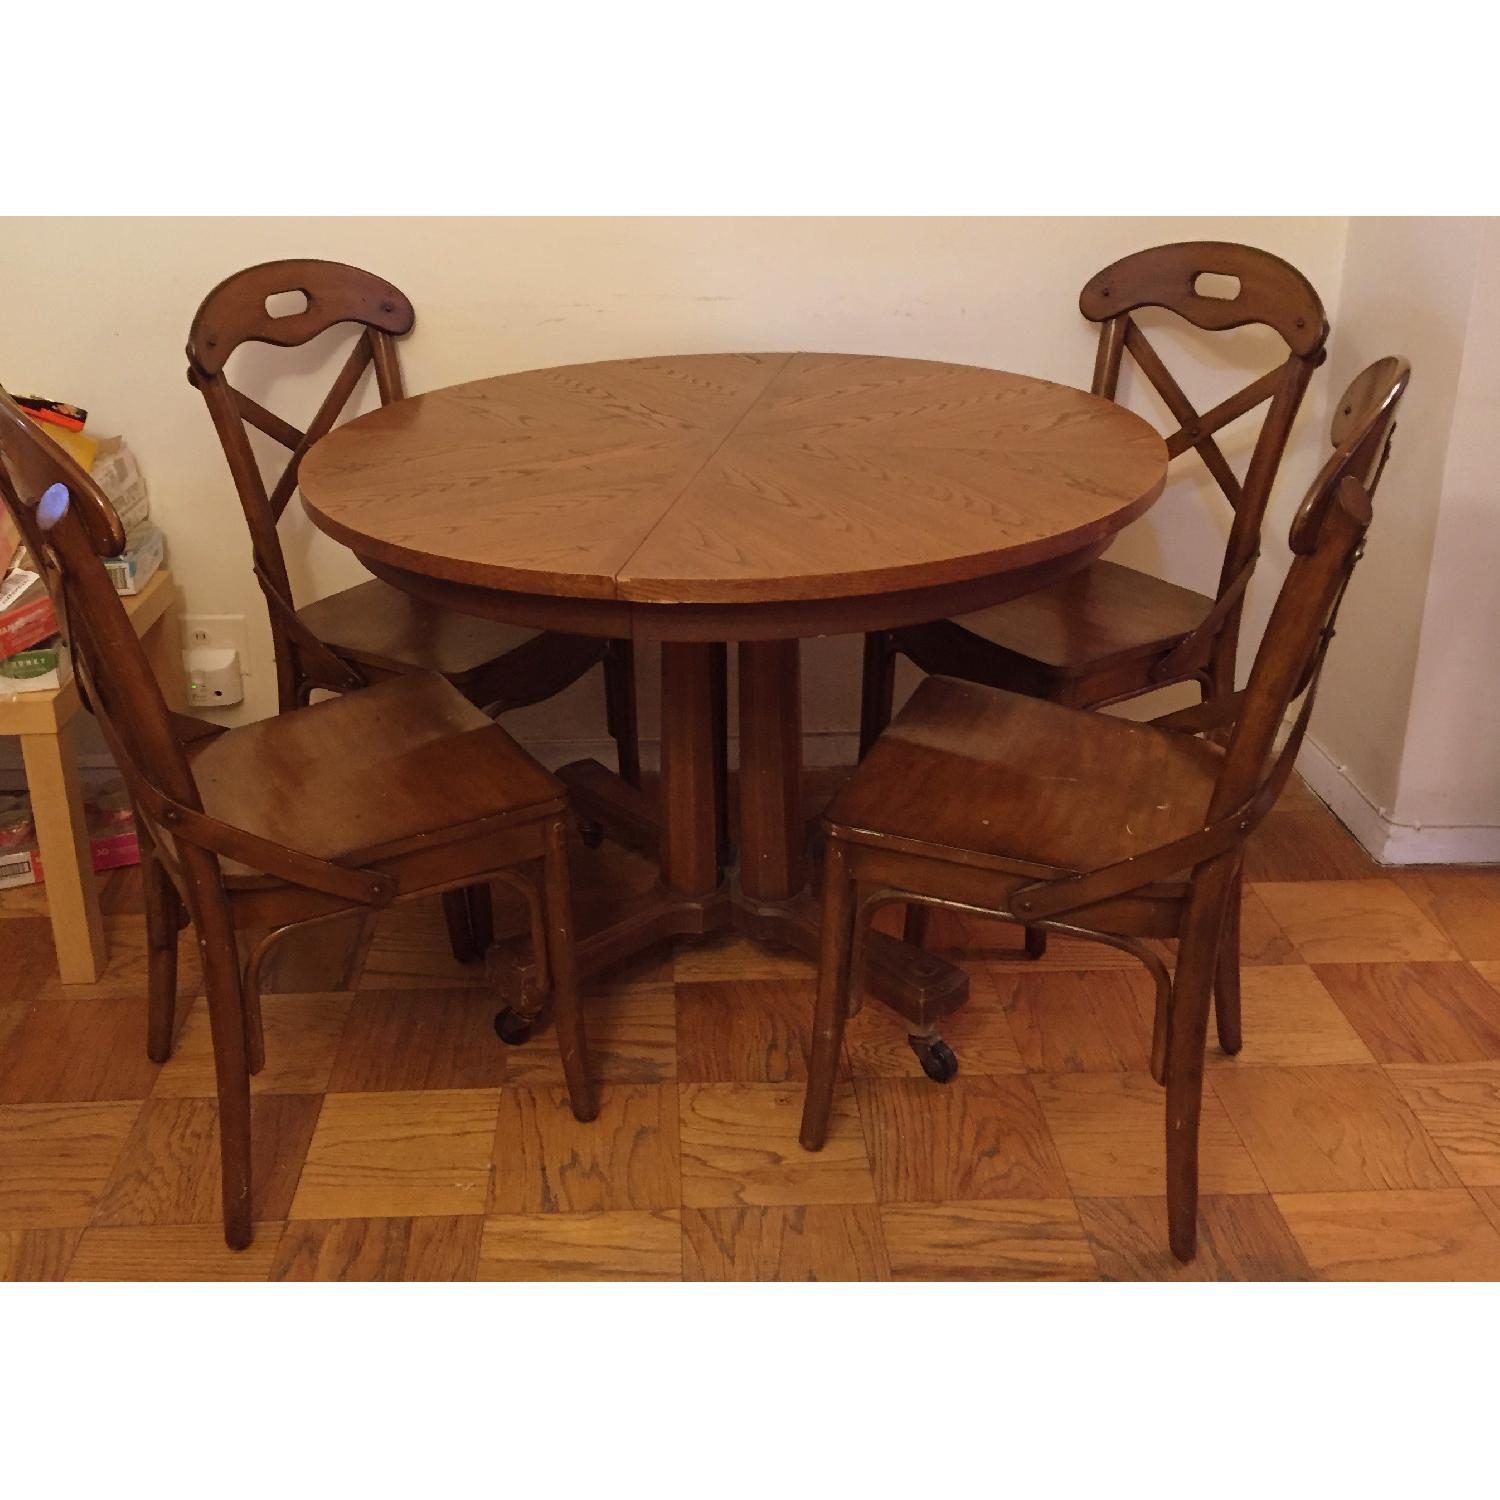 Pier 1 imports Wood Marchella Dining Room Chairs - image-1